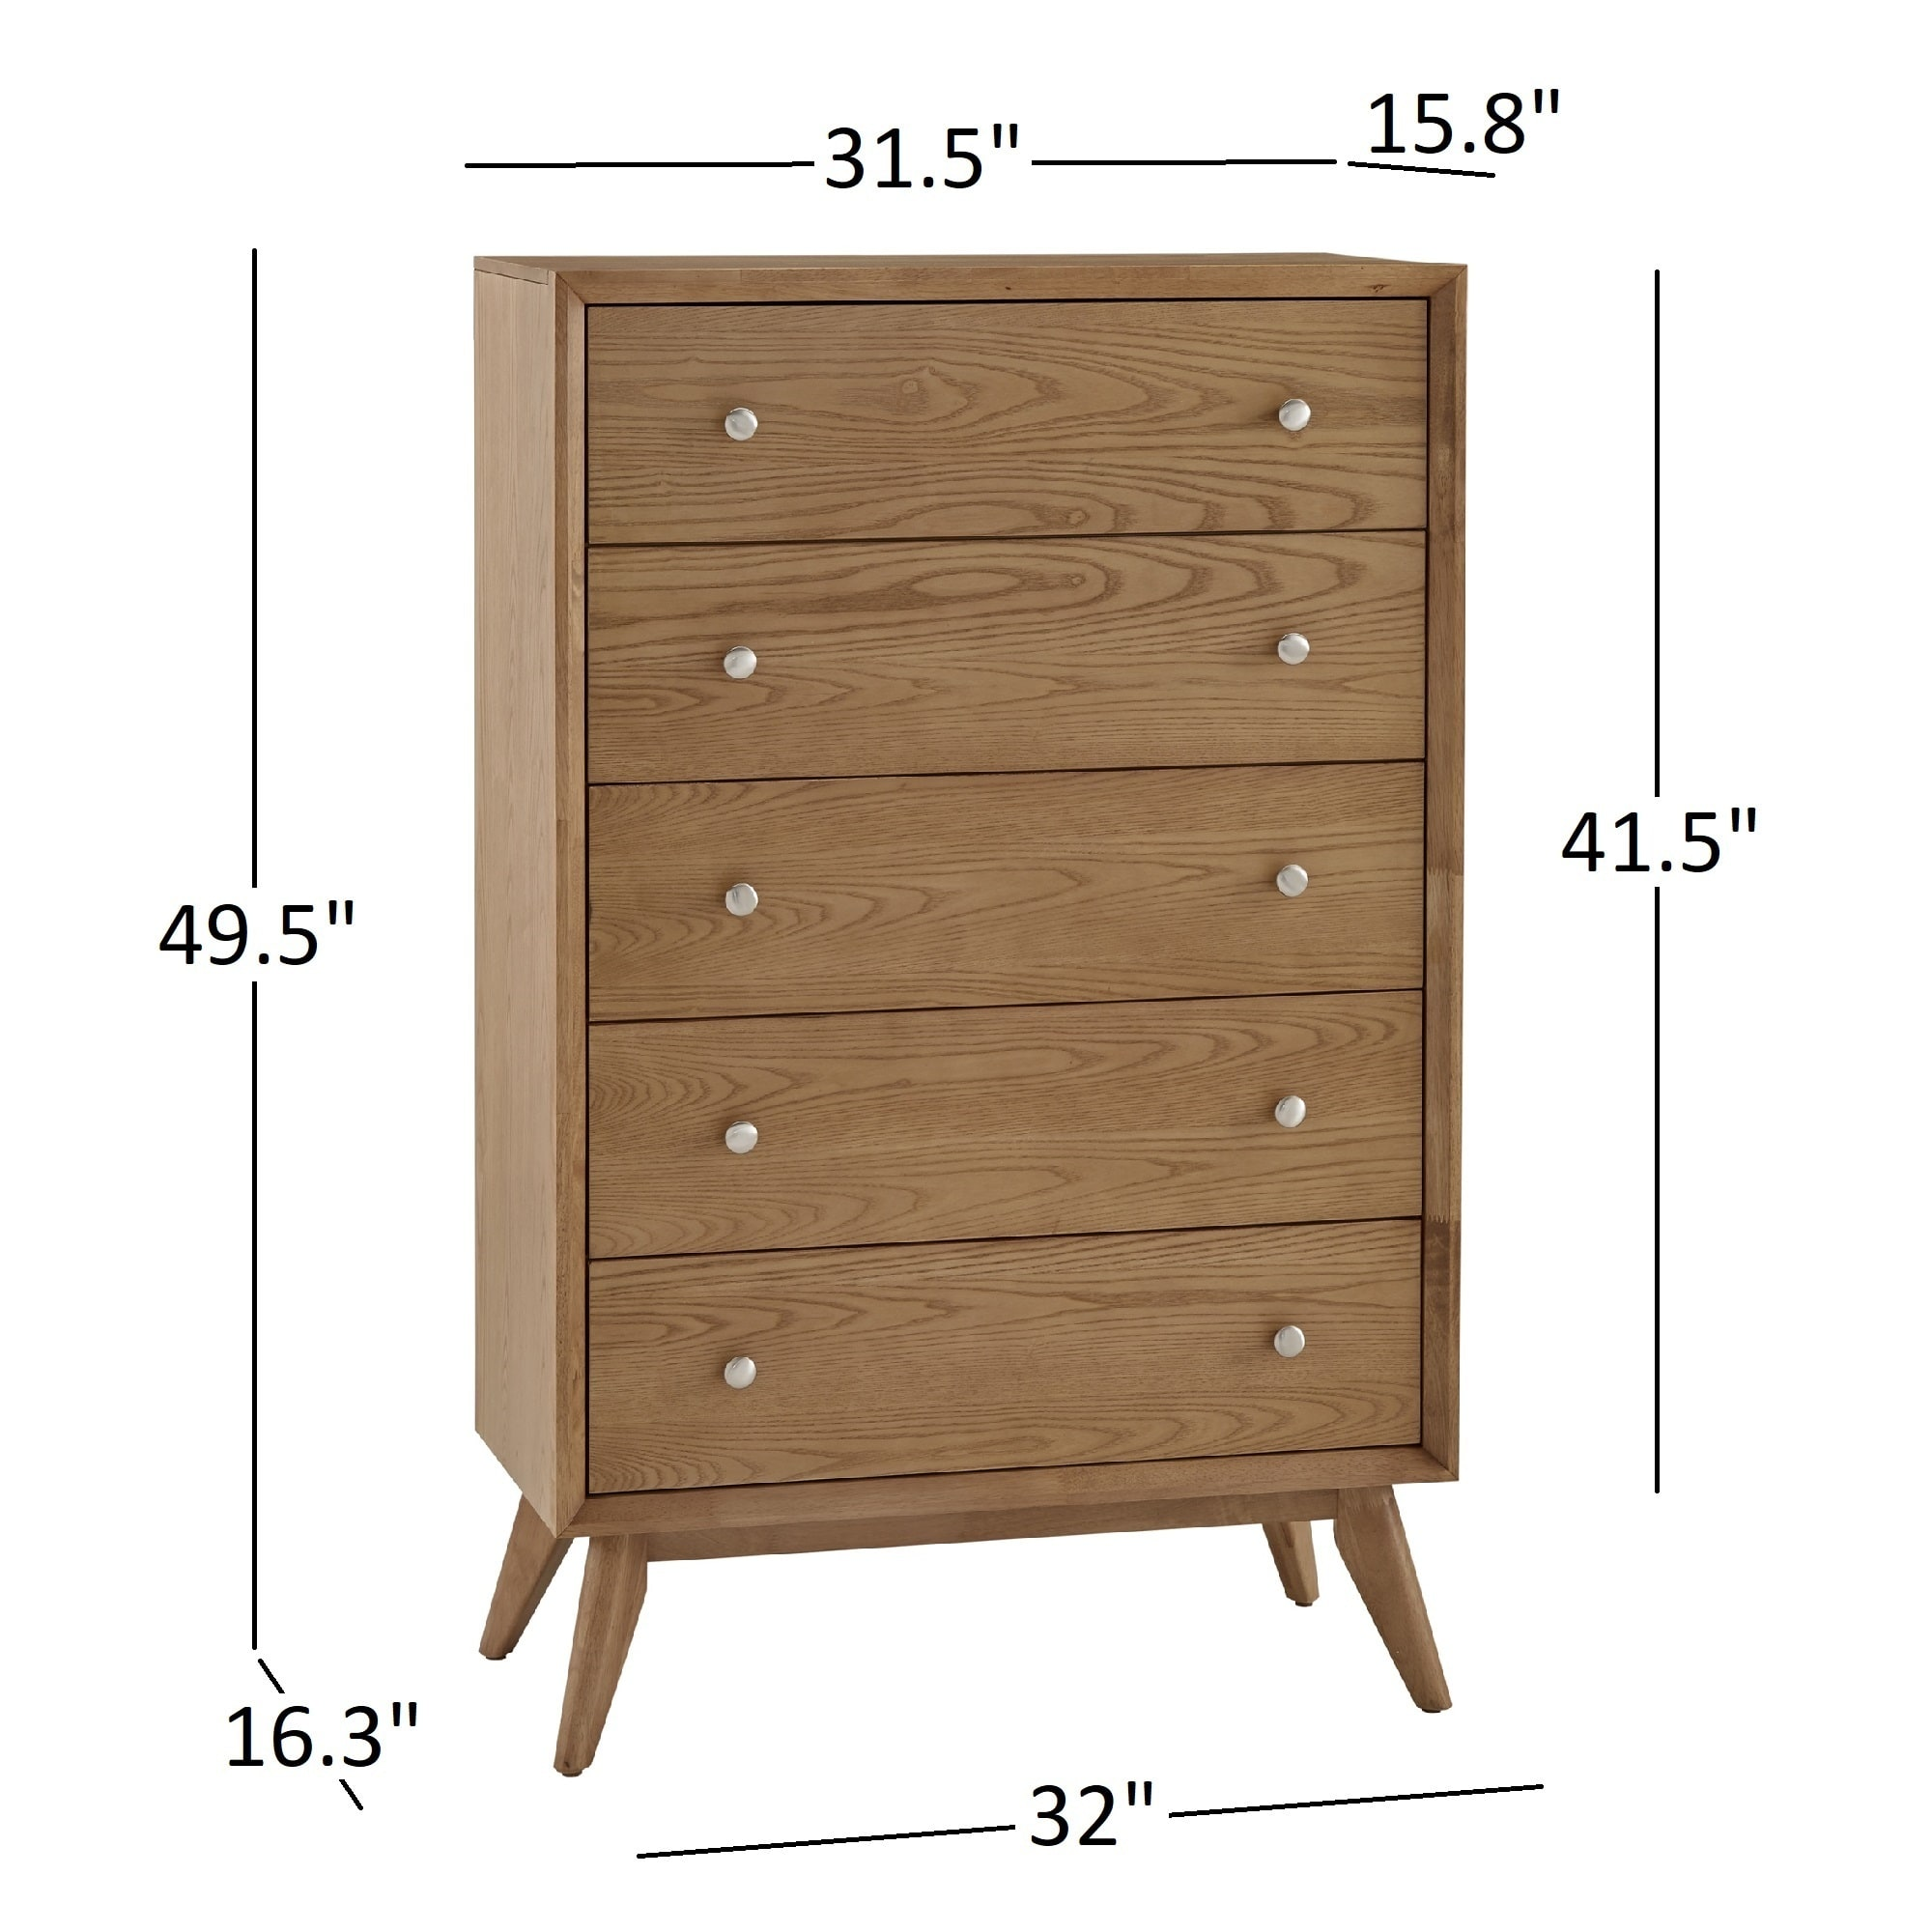 Sylvia Mid-Century 5-Drawer Wood Chest by iNSPIRE Q Modern - Free Shipping  Today - Overstock.com - 24157044